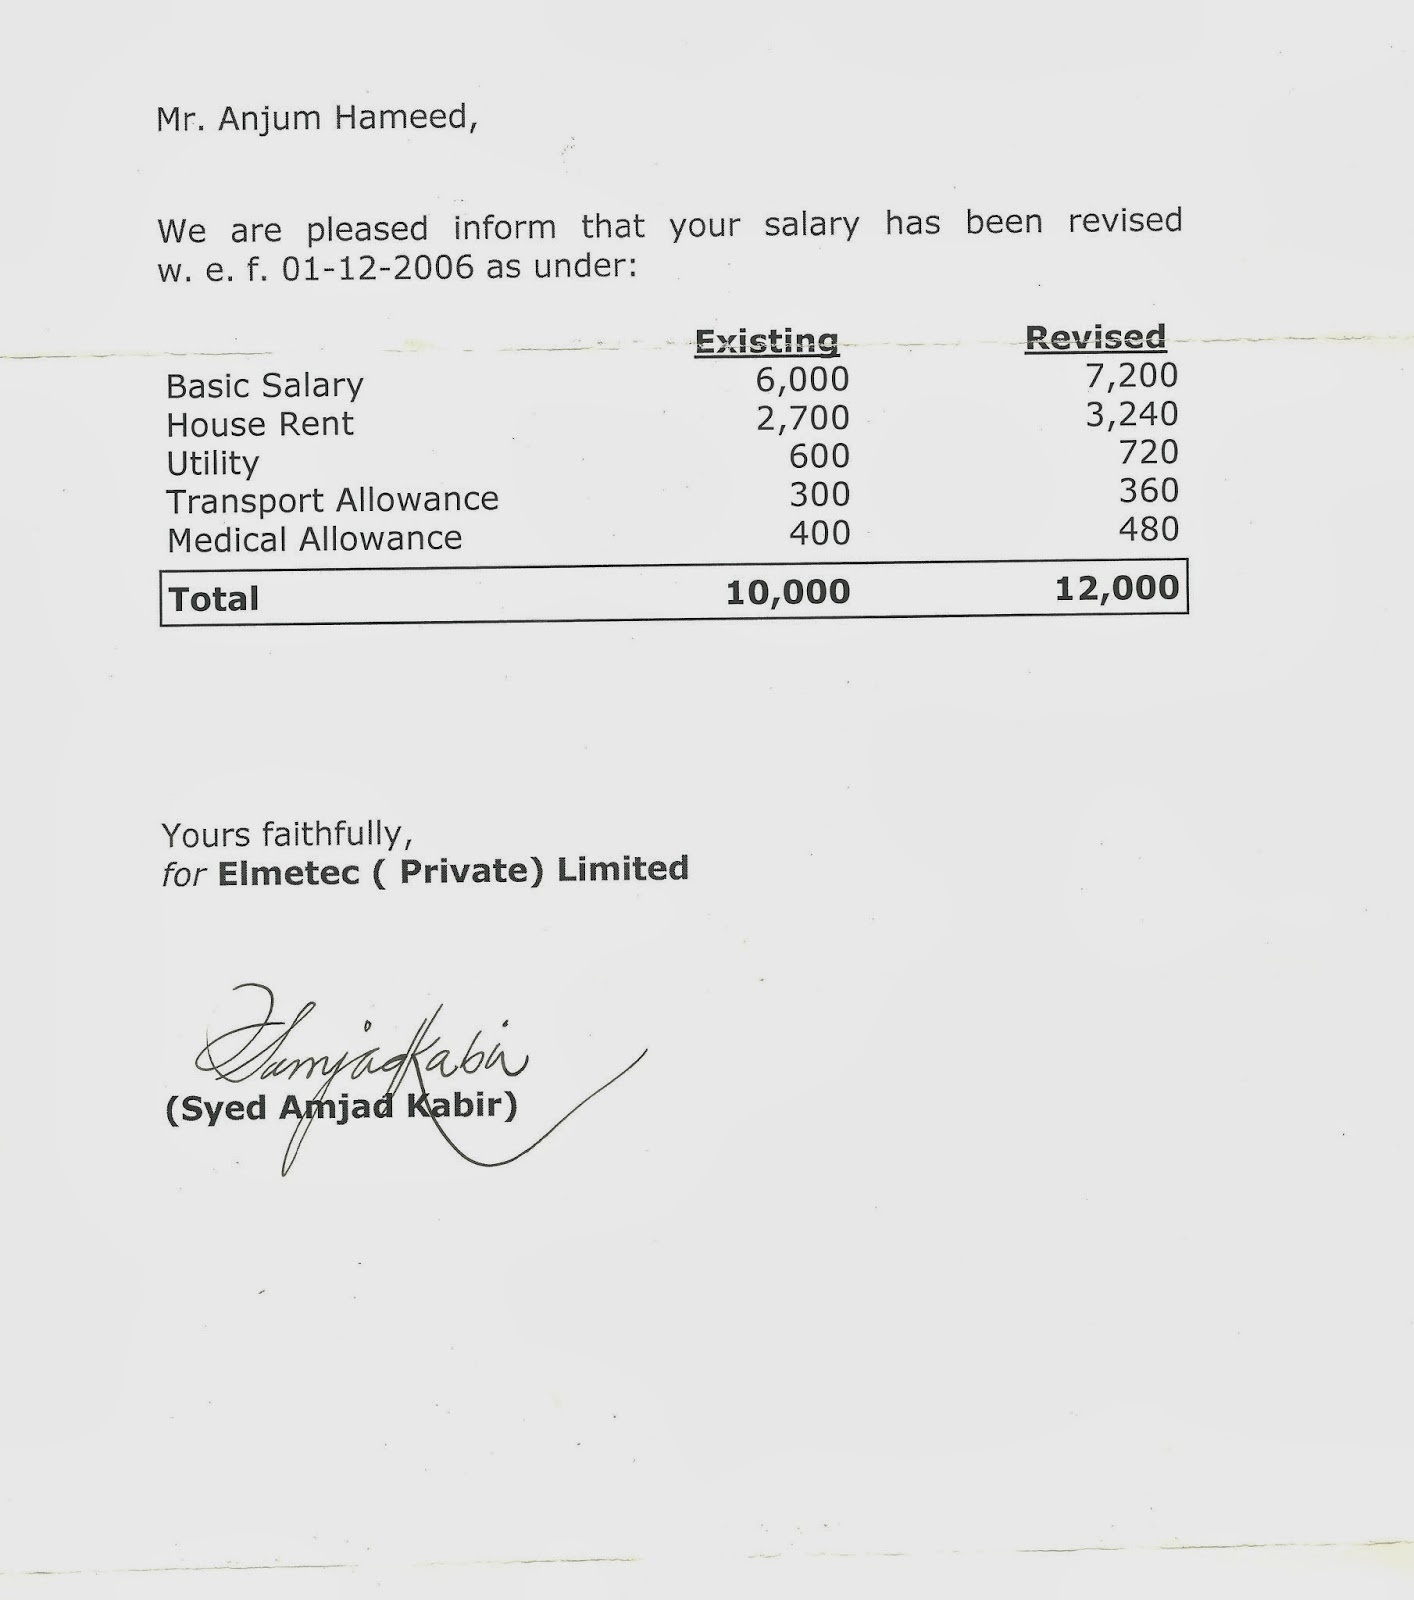 Salary Slip Sample Images